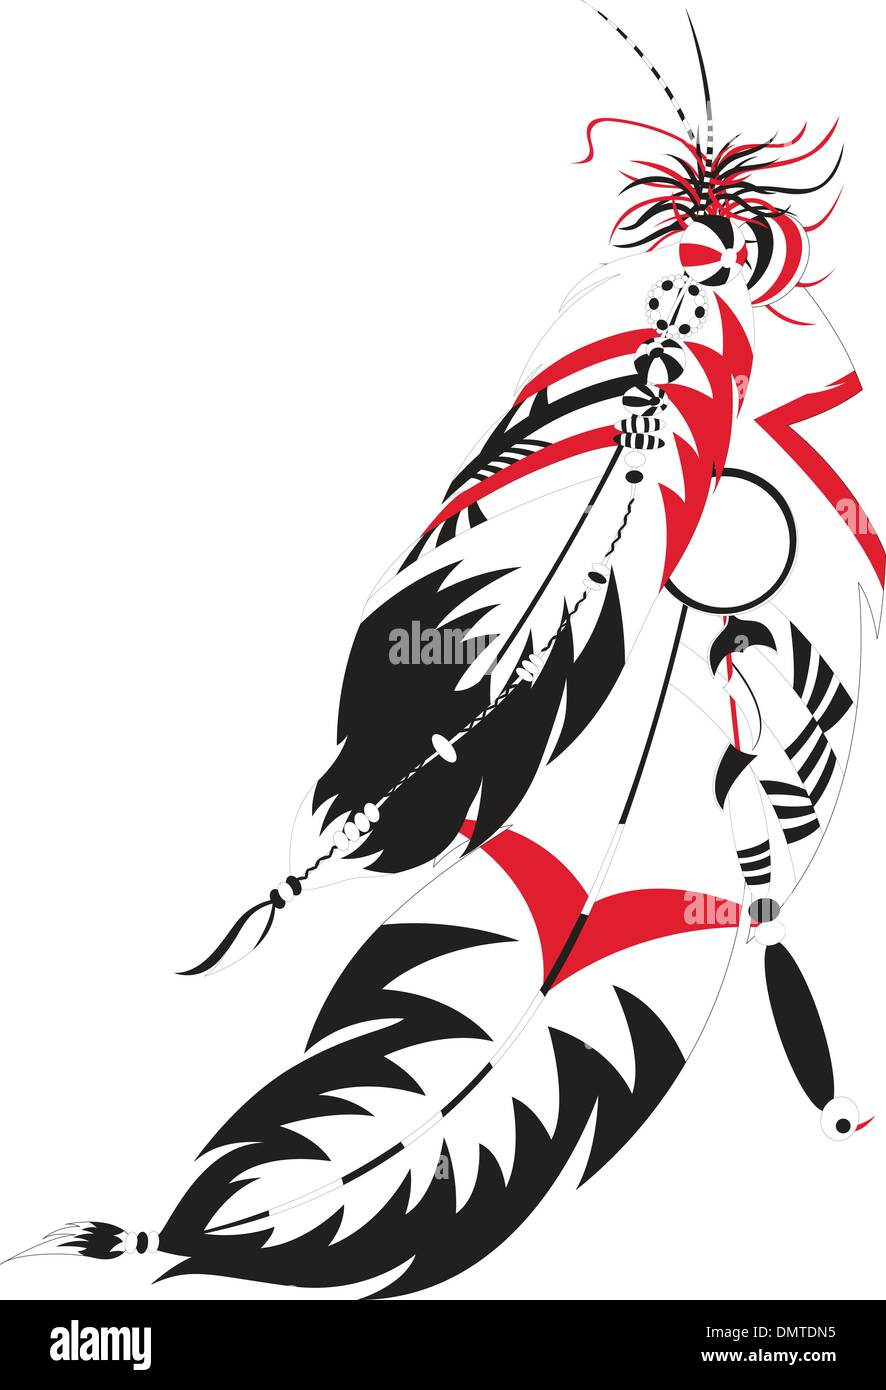 Indian feather - Stock Image